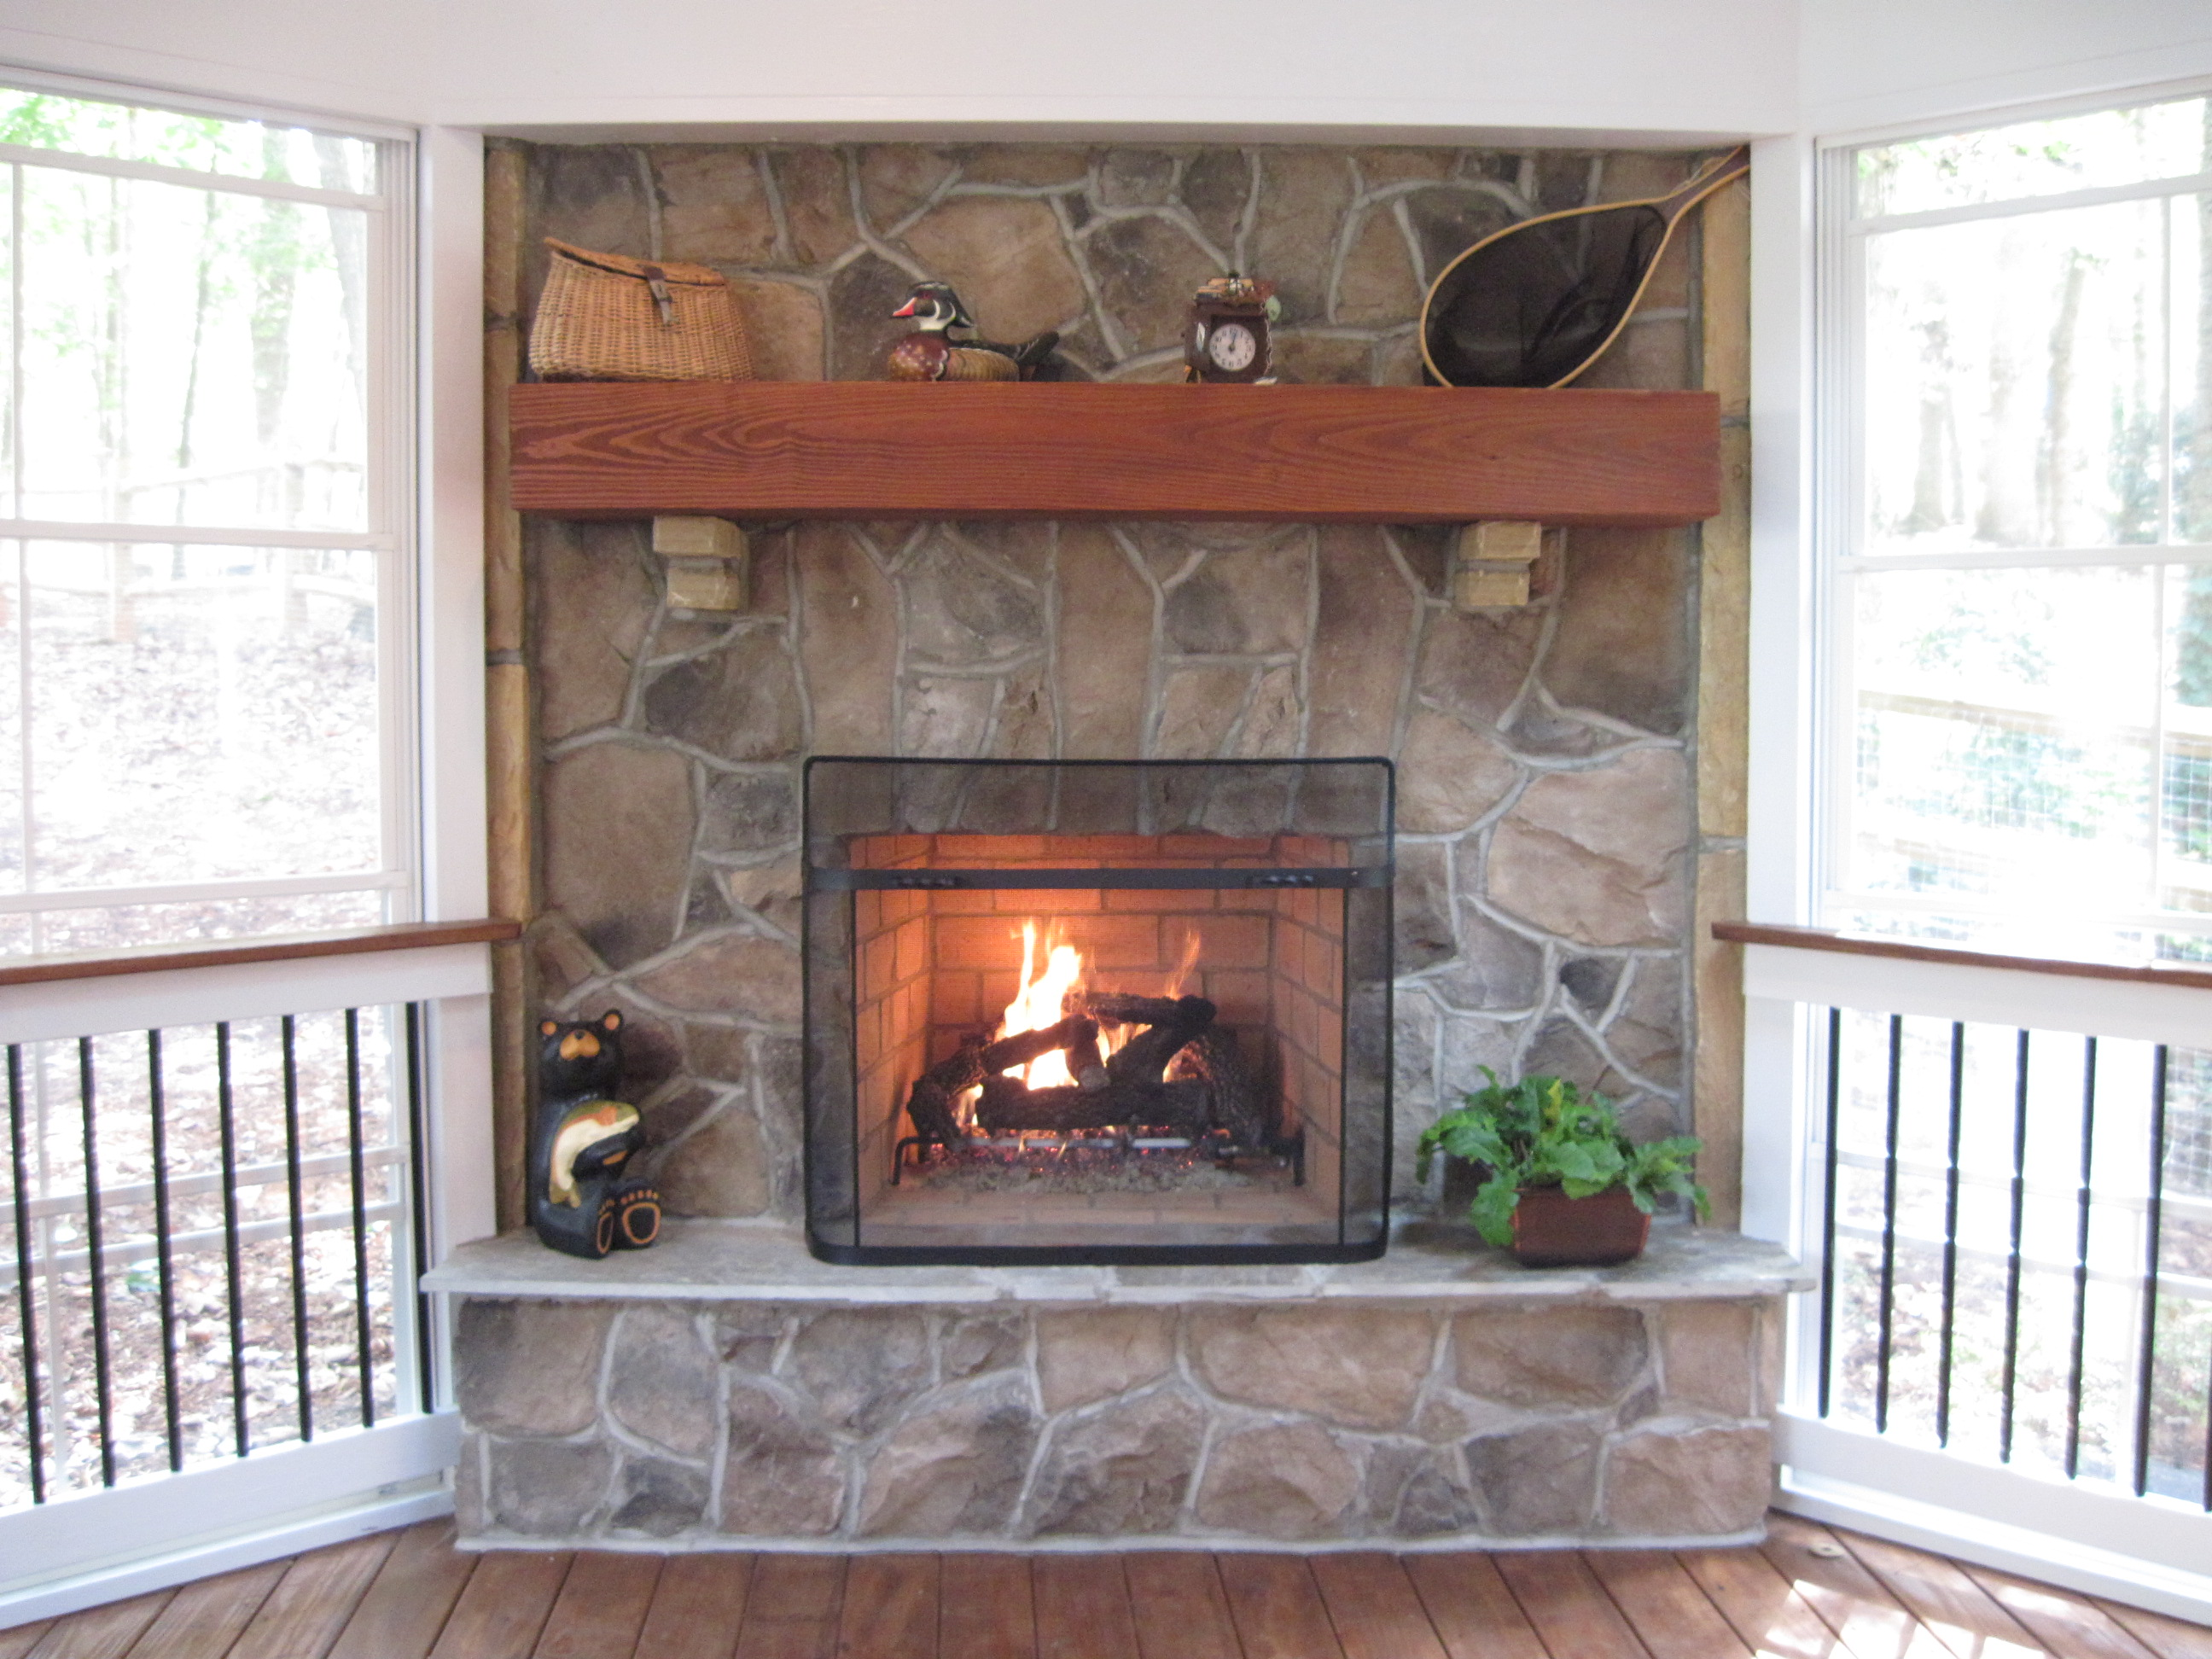 photos photo cap in ideas biz chimney budas of fireplace outdoor